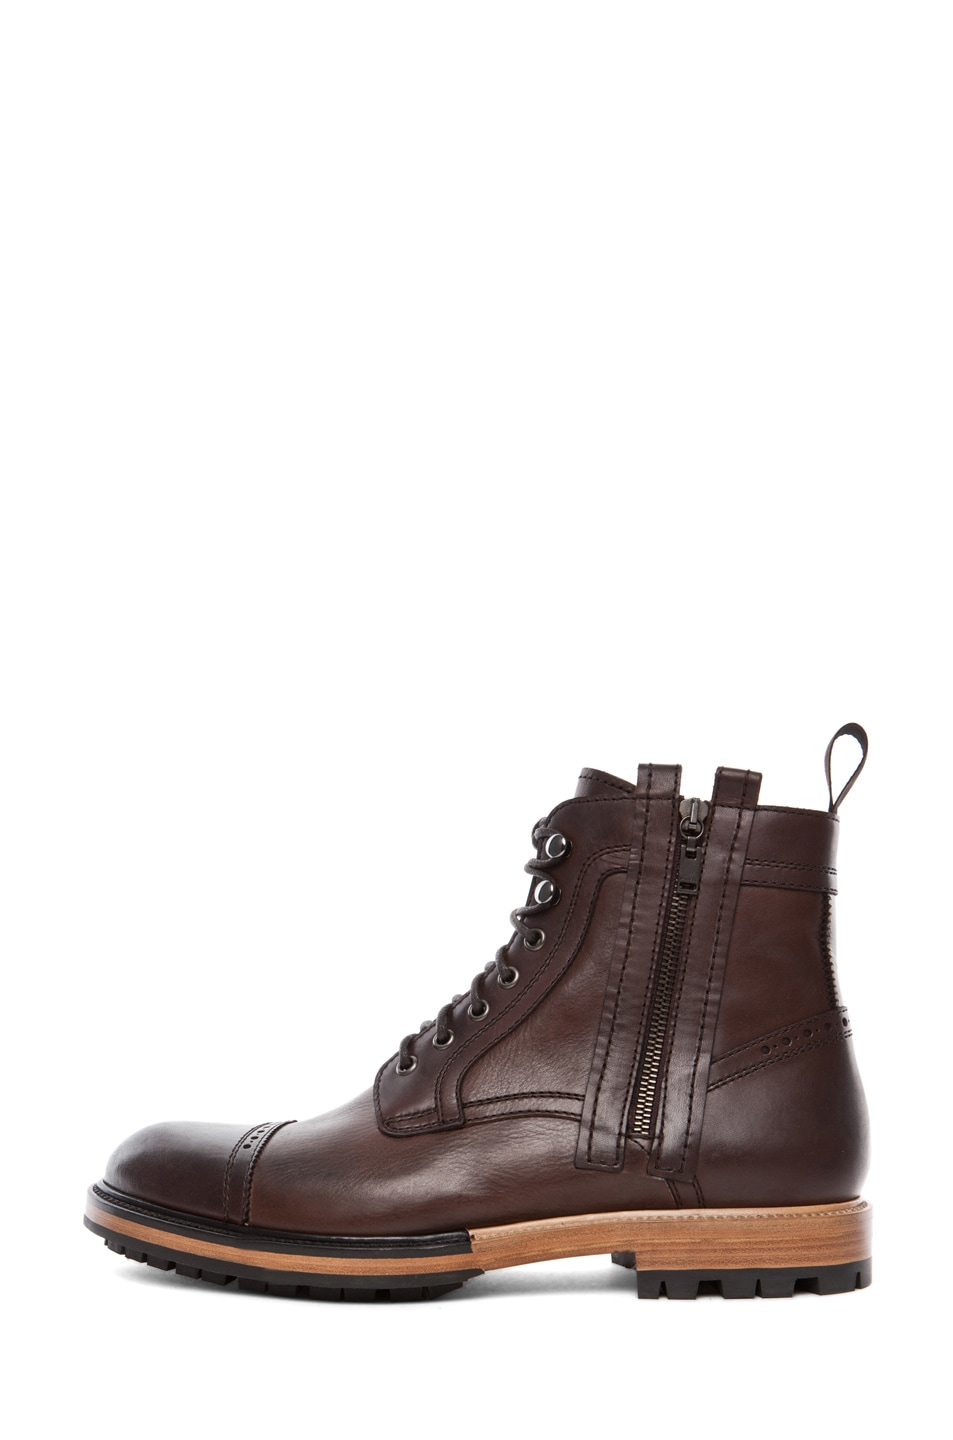 Image 1 of Lanvin Lace Up Boots in Dark Brown